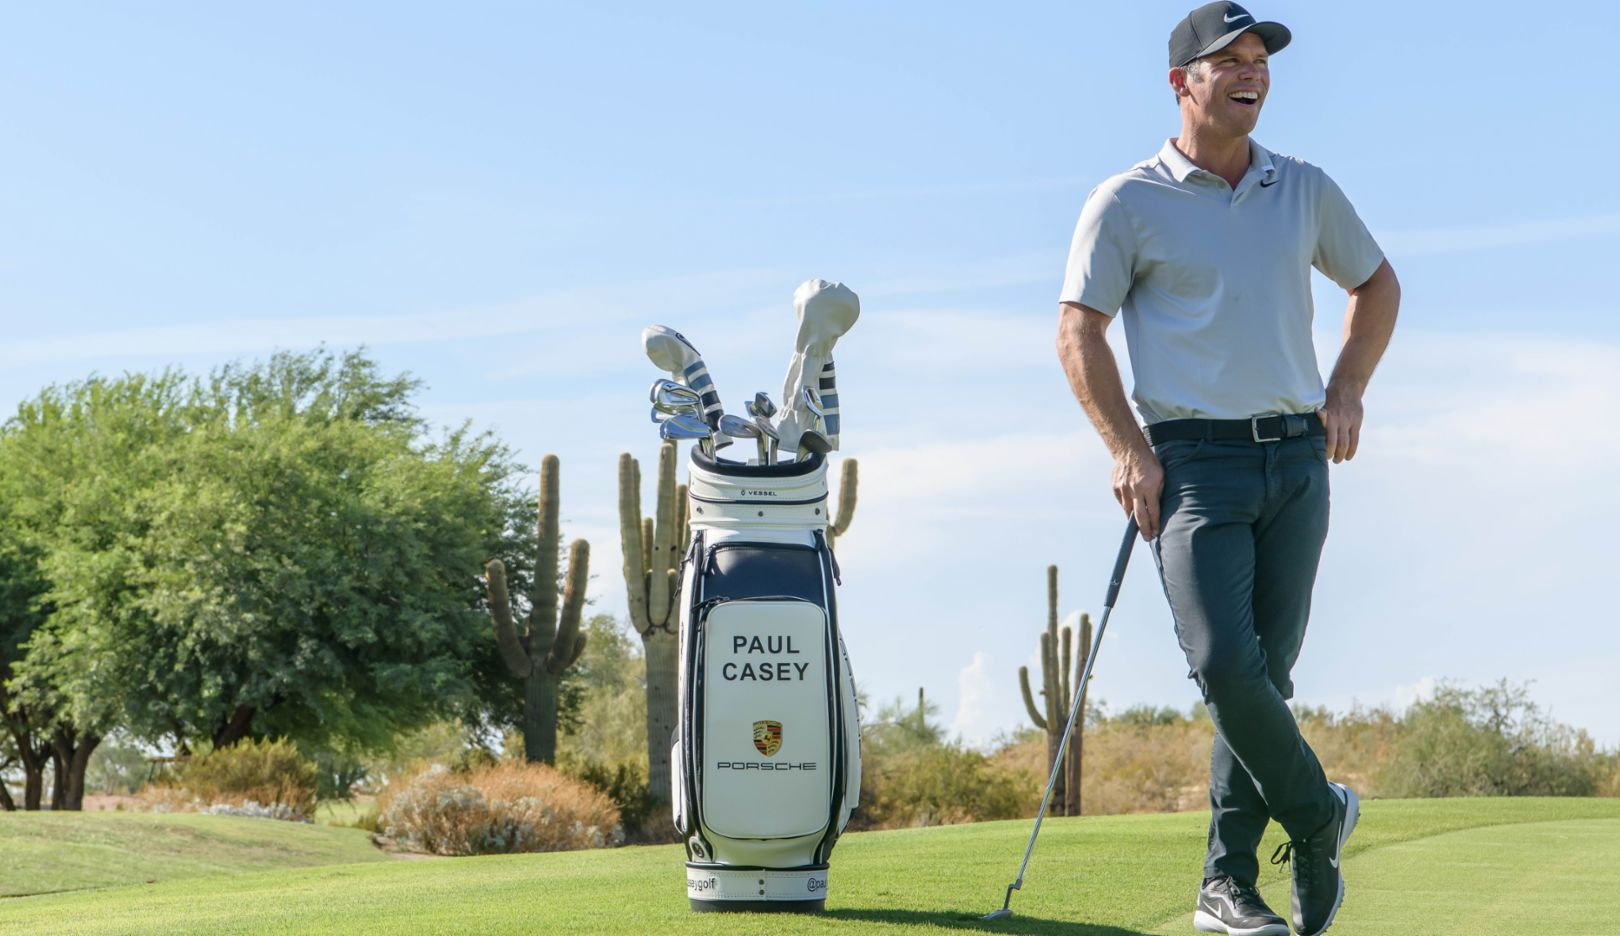 A man and his bag: Englishman Paul Casey playing on the North American PGA Tour. He has been a professional golfer for the past twenty years.